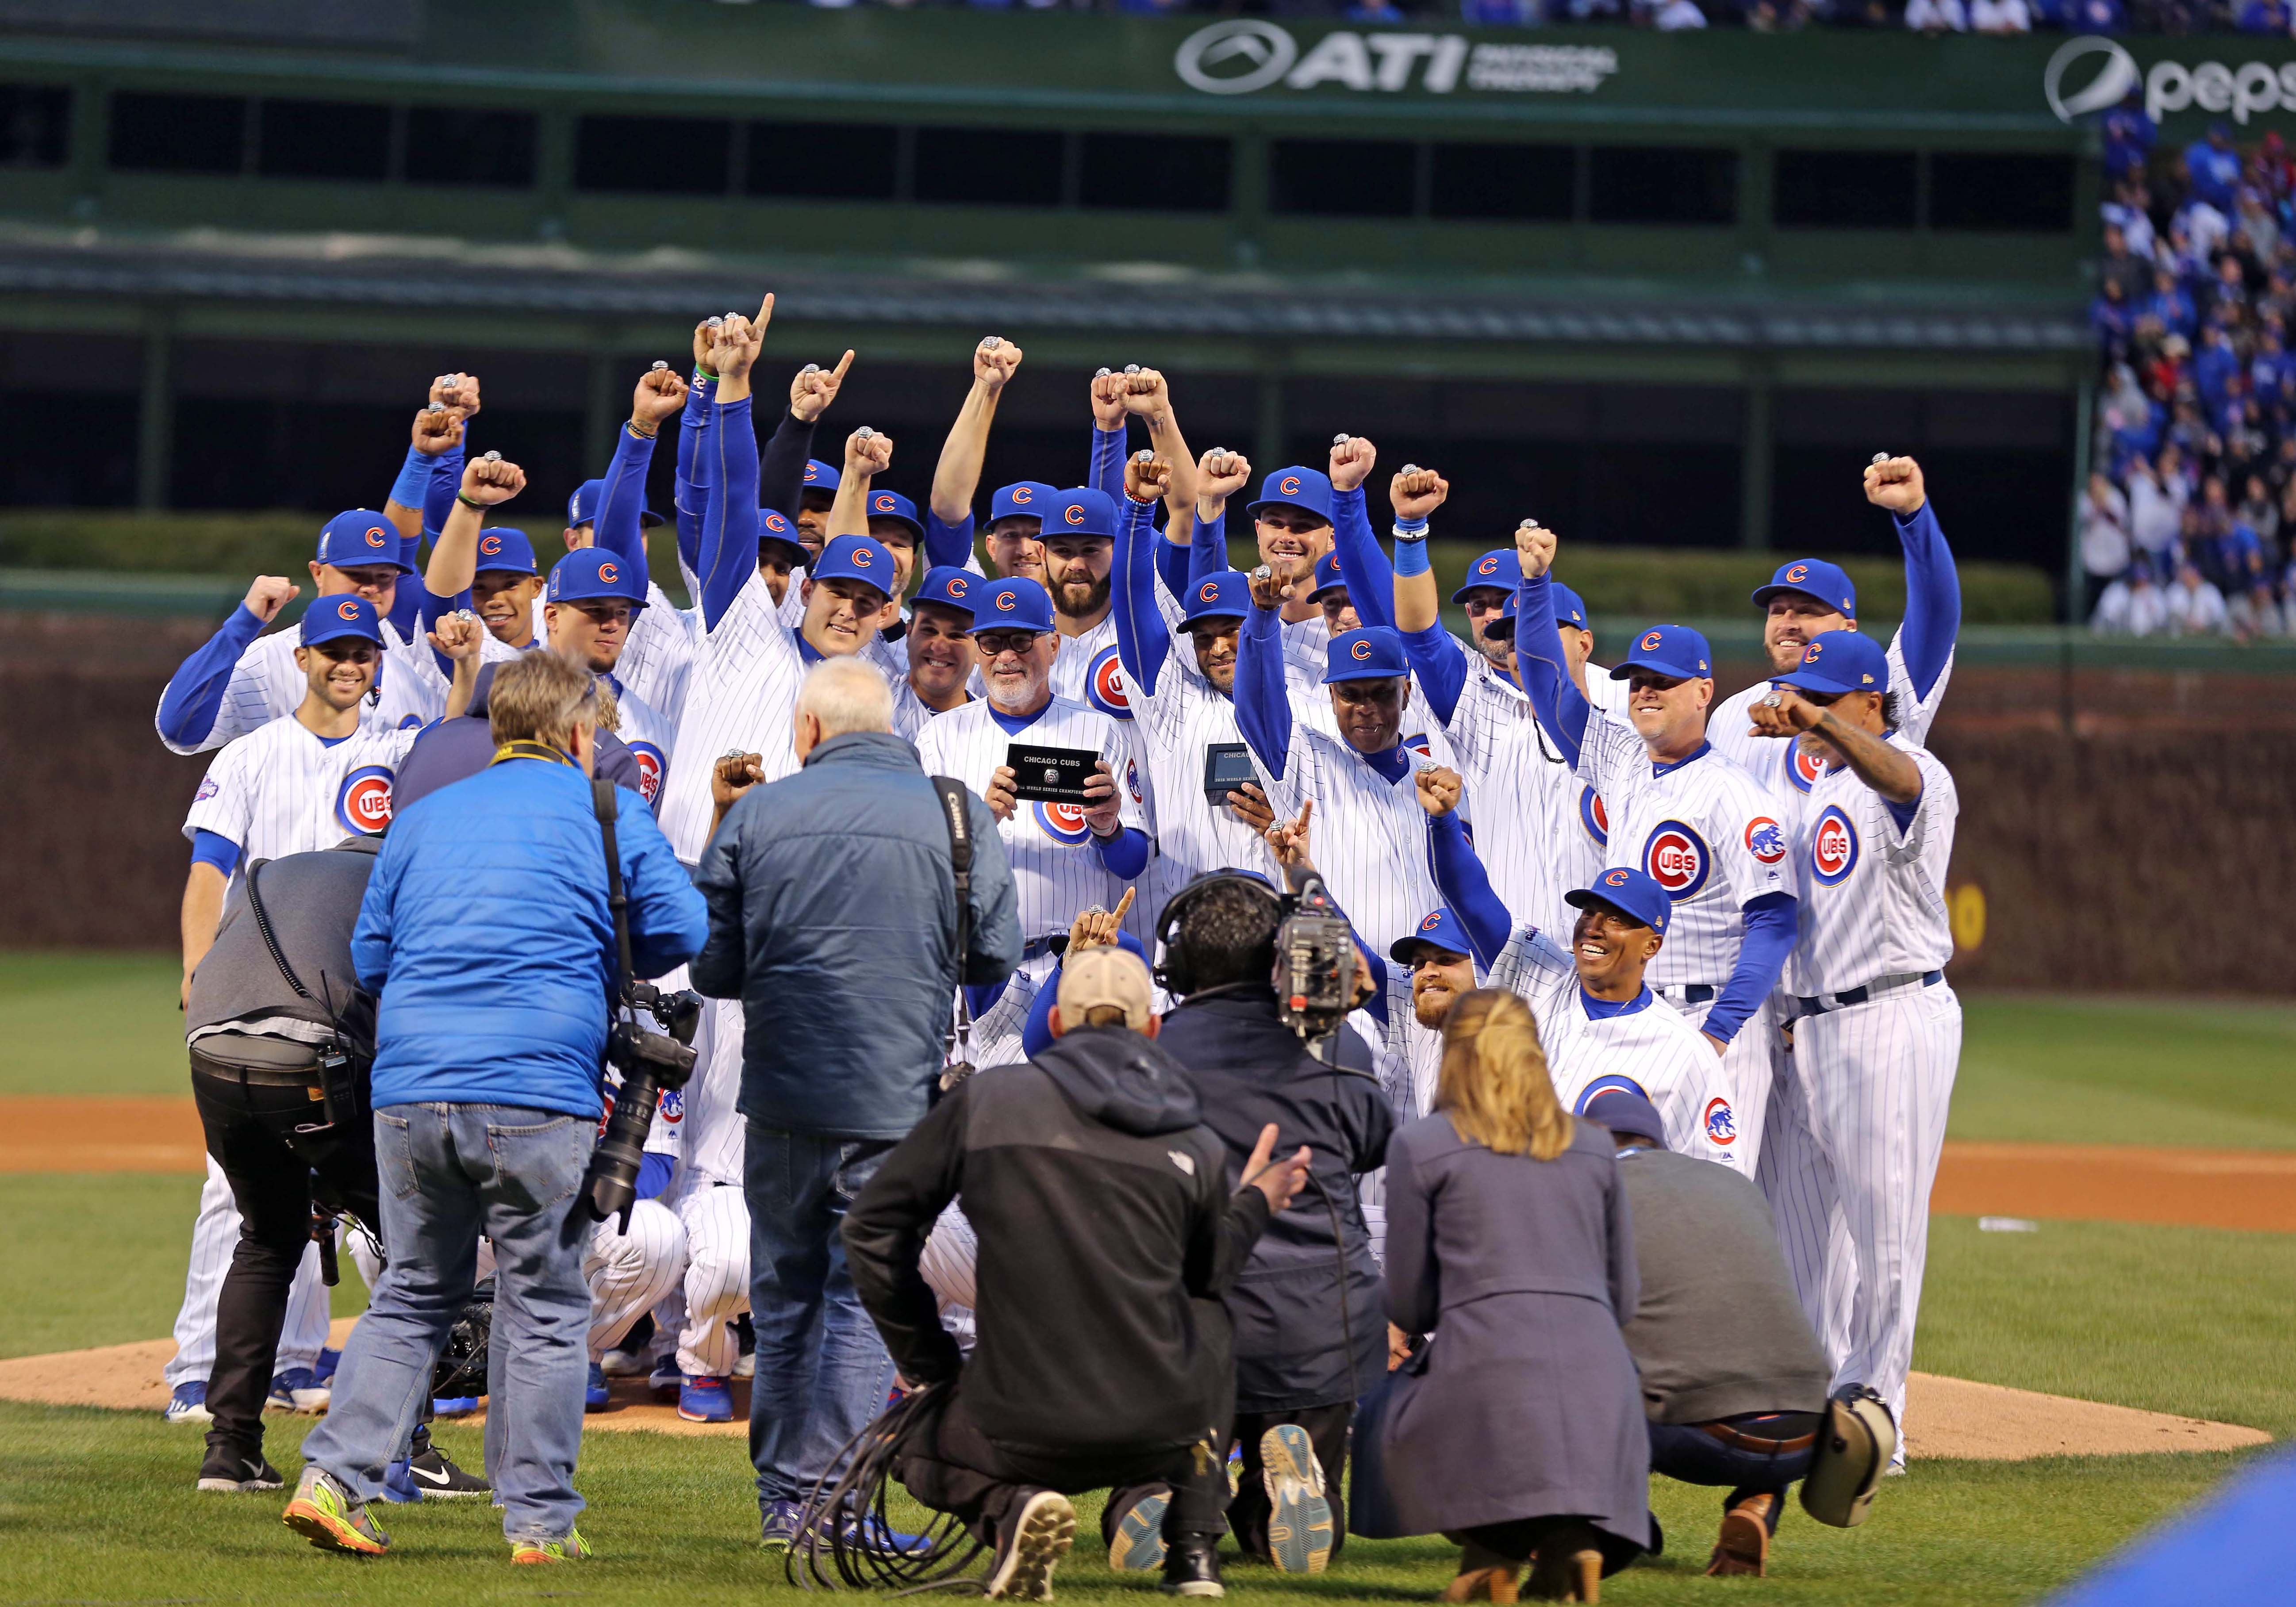 10008984-mlb-los-angeles-dodgers-at-chicago-cubs-1